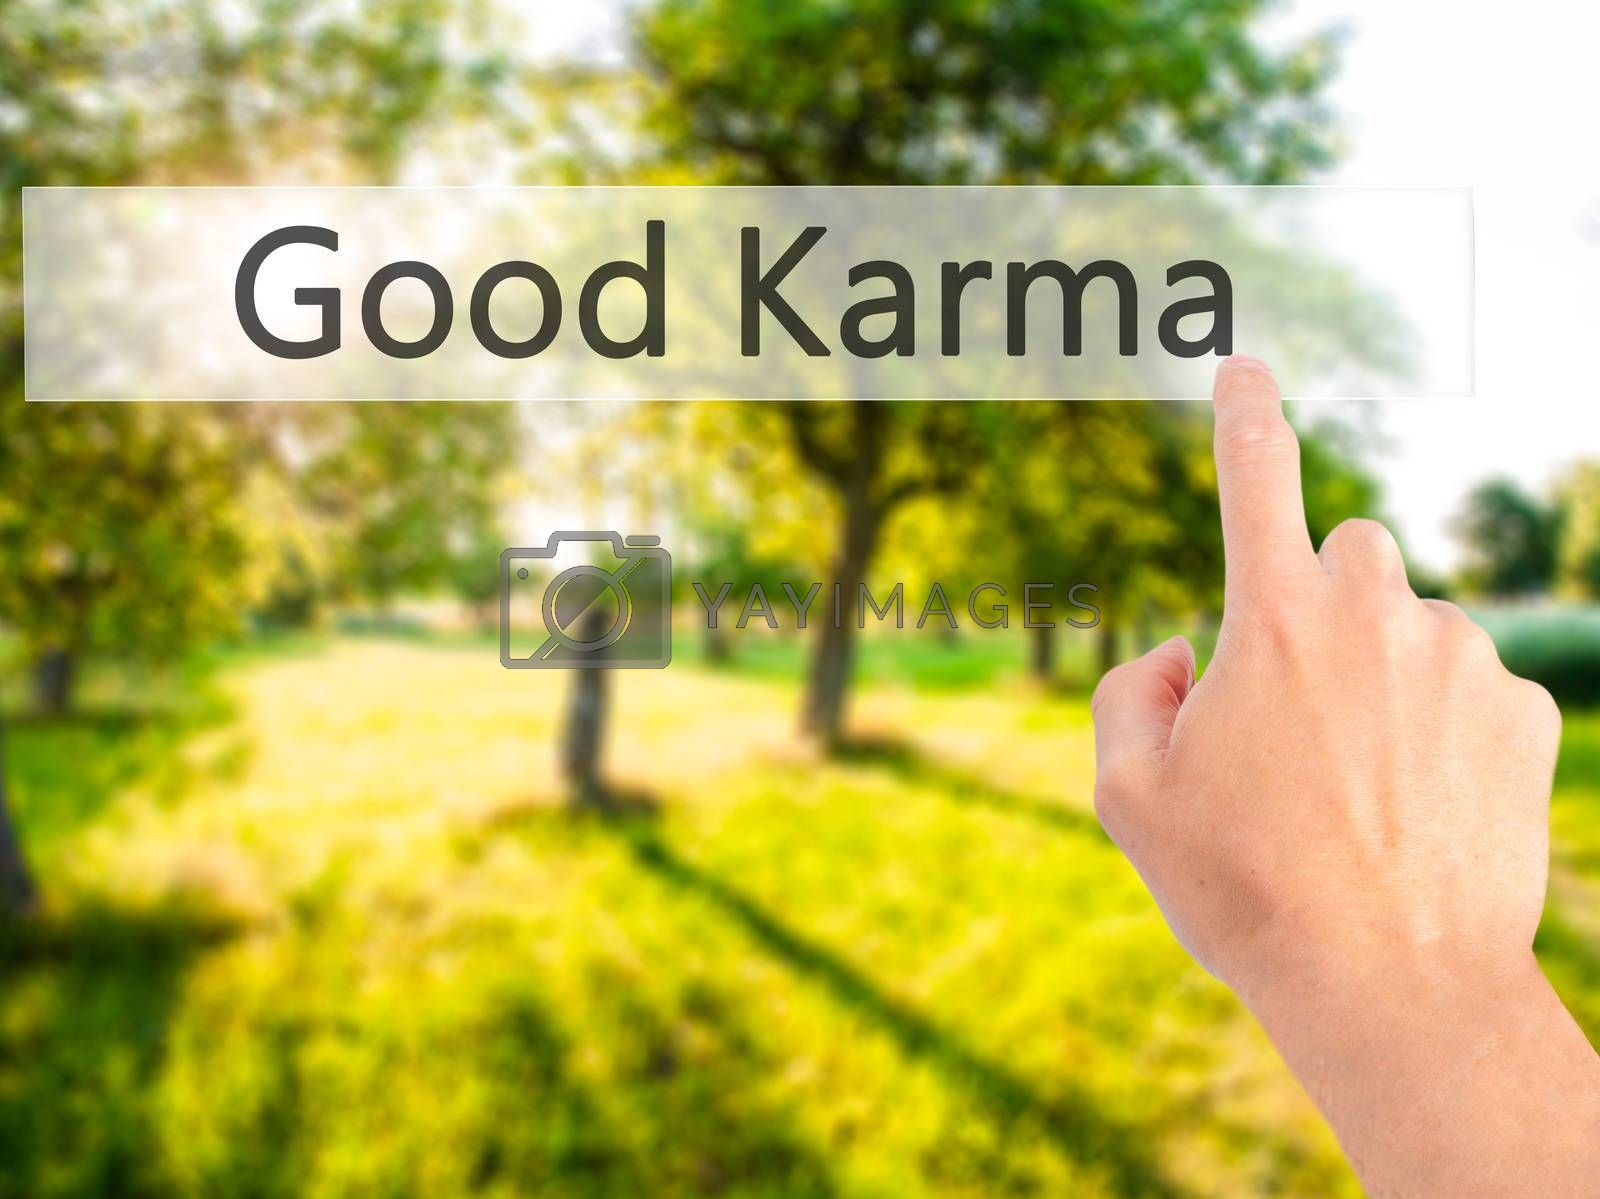 Good Karma - Hand pressing a button on blurred background concep by netsay.net